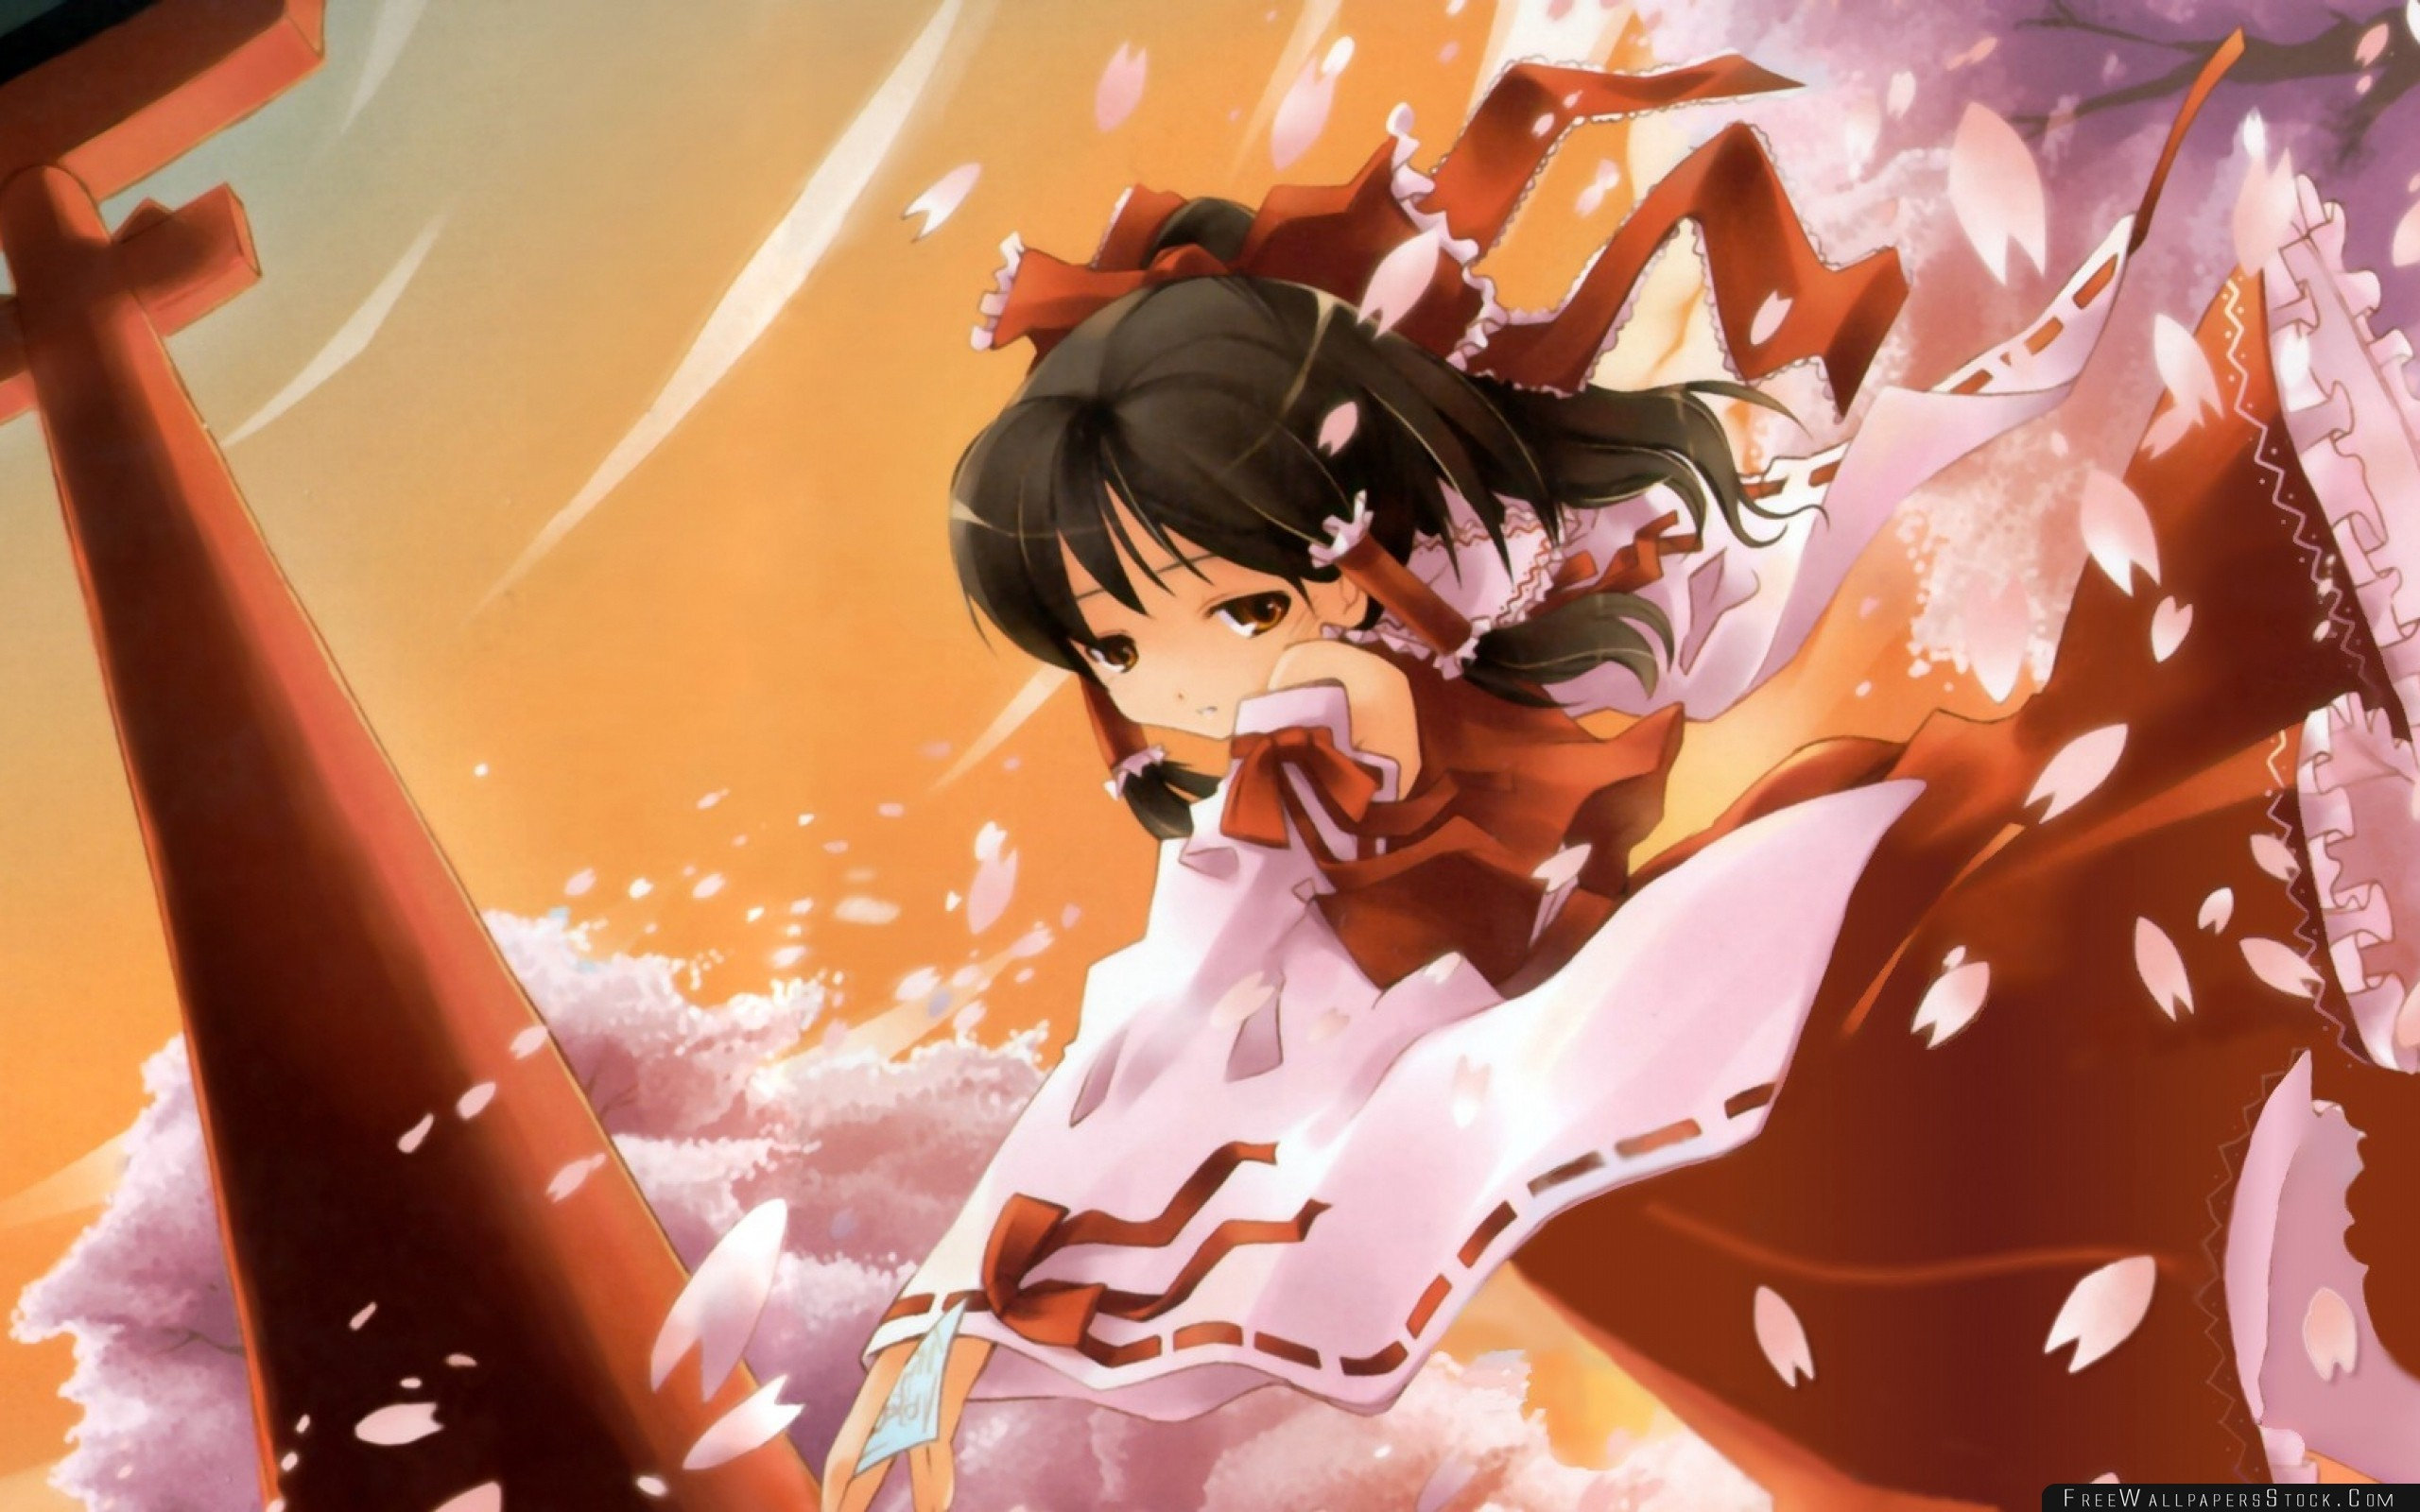 Download Free Wallpaper Touhou Girl Brunette Dress Petals Sadness